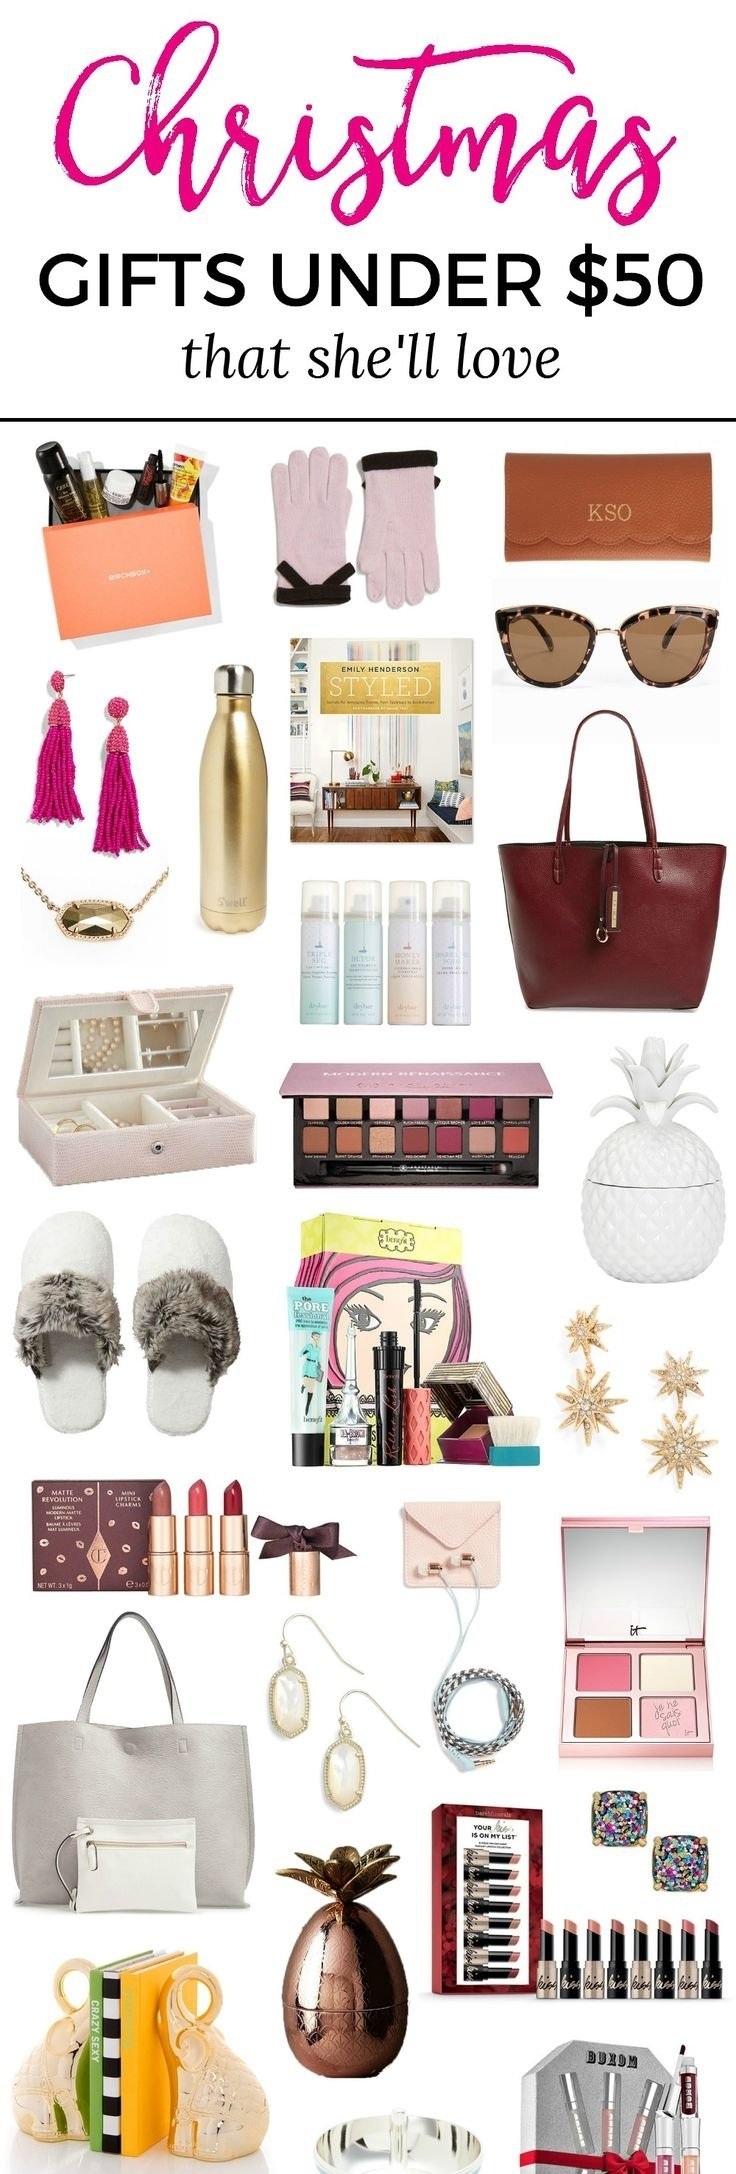 10 Most Recommended Gift Ideas For Young Women 7 best christmas wish list images on pinterest christmas gifts 1 2020